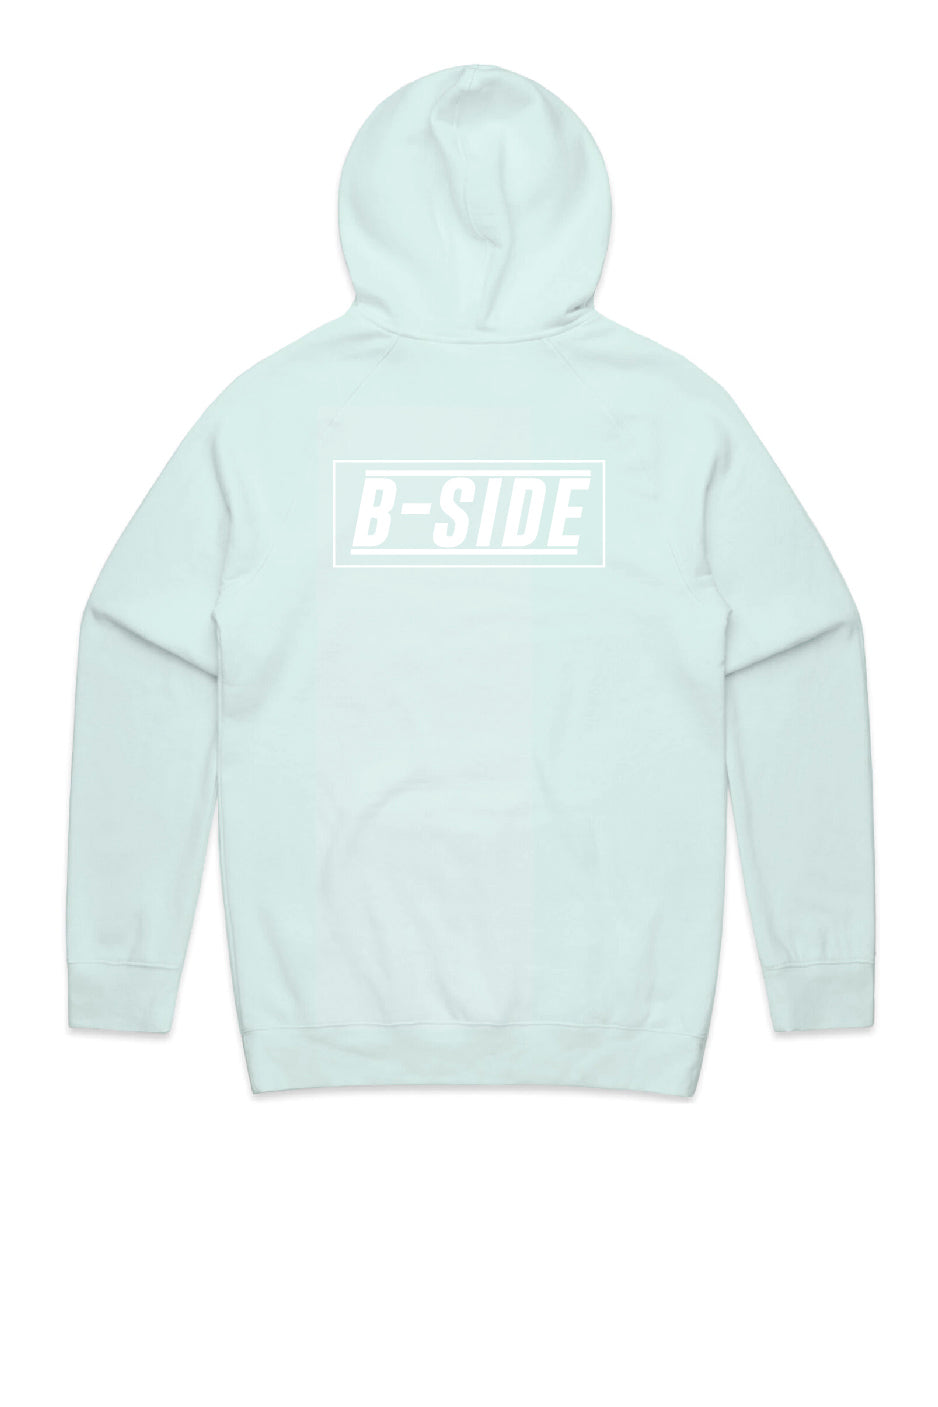 Project B-Side Hoodie Mint